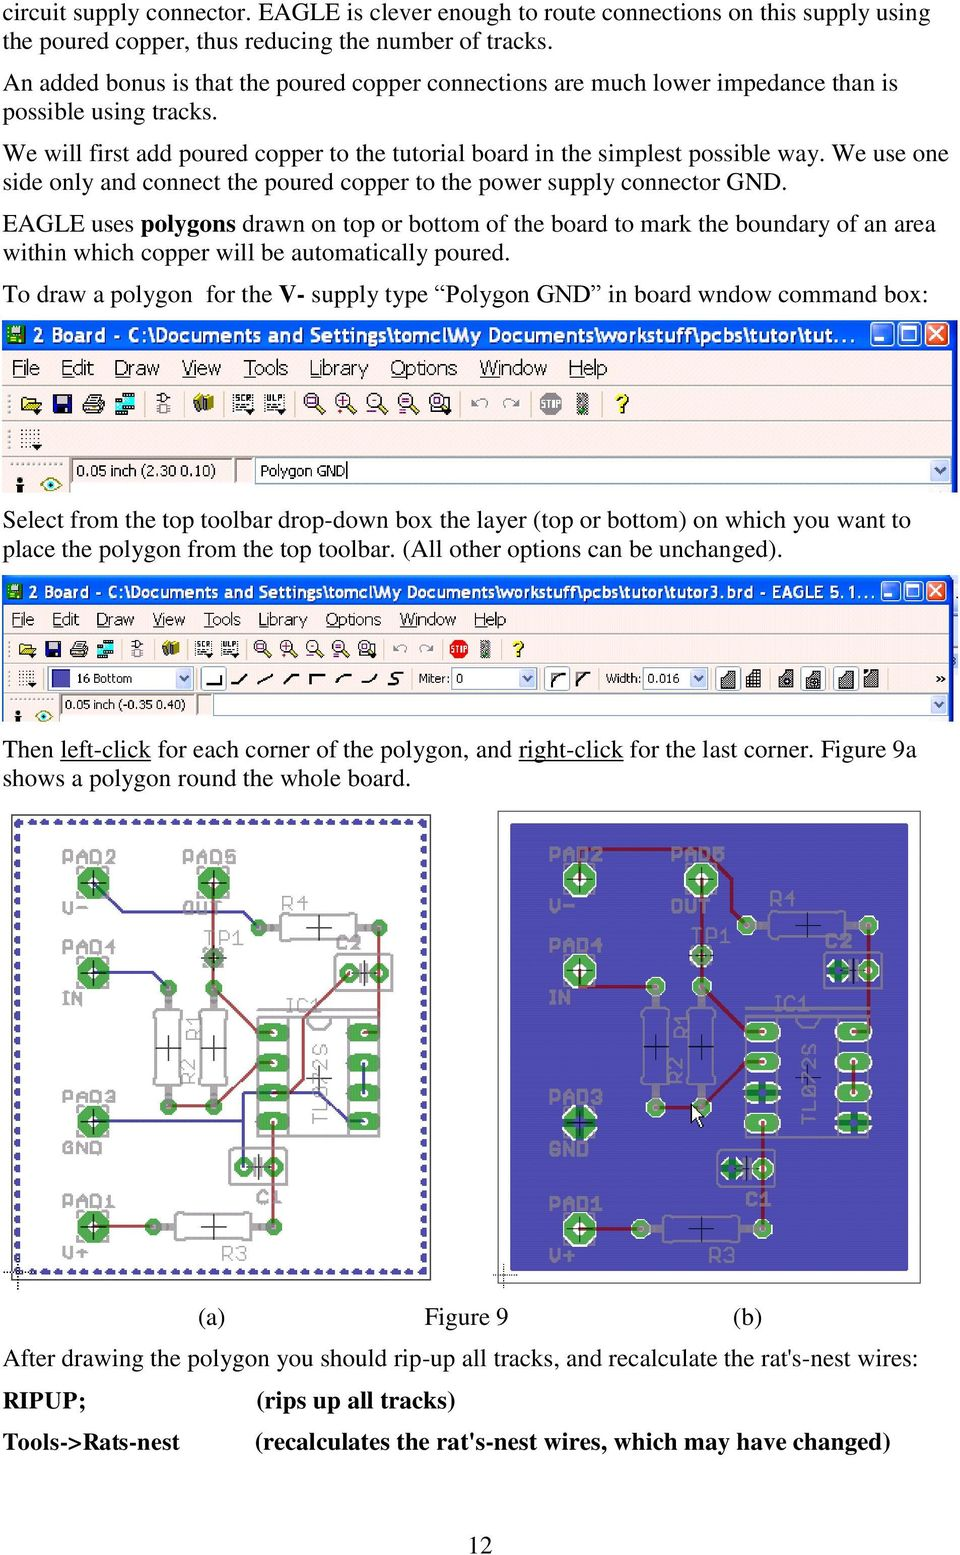 The Eagle Schematic Pcb Layout Editor A Guide Pdf Cadsoft Is An App For Designing Printed Circuit Boards It Has We Use One Side Only And Connect Poured Copper To Power Supply Connector Gnd